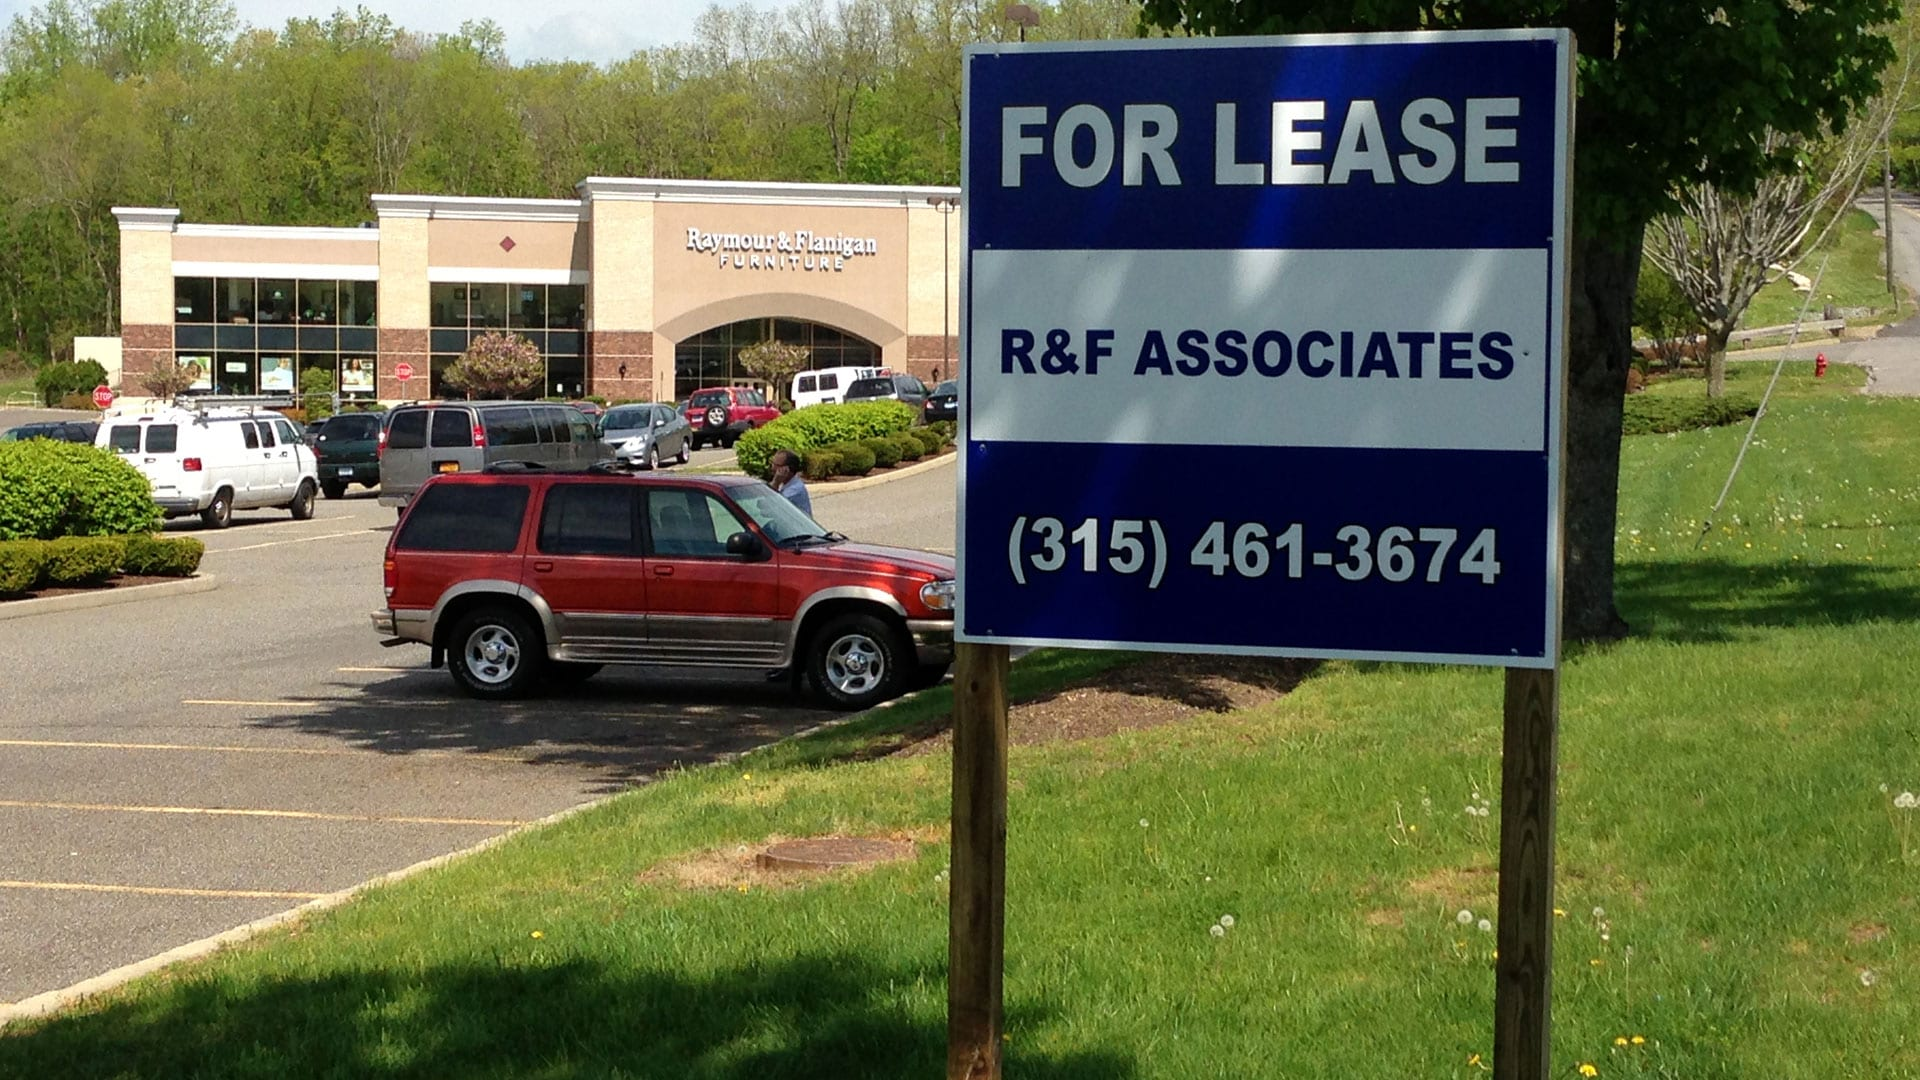 For Lease Real Estate sign